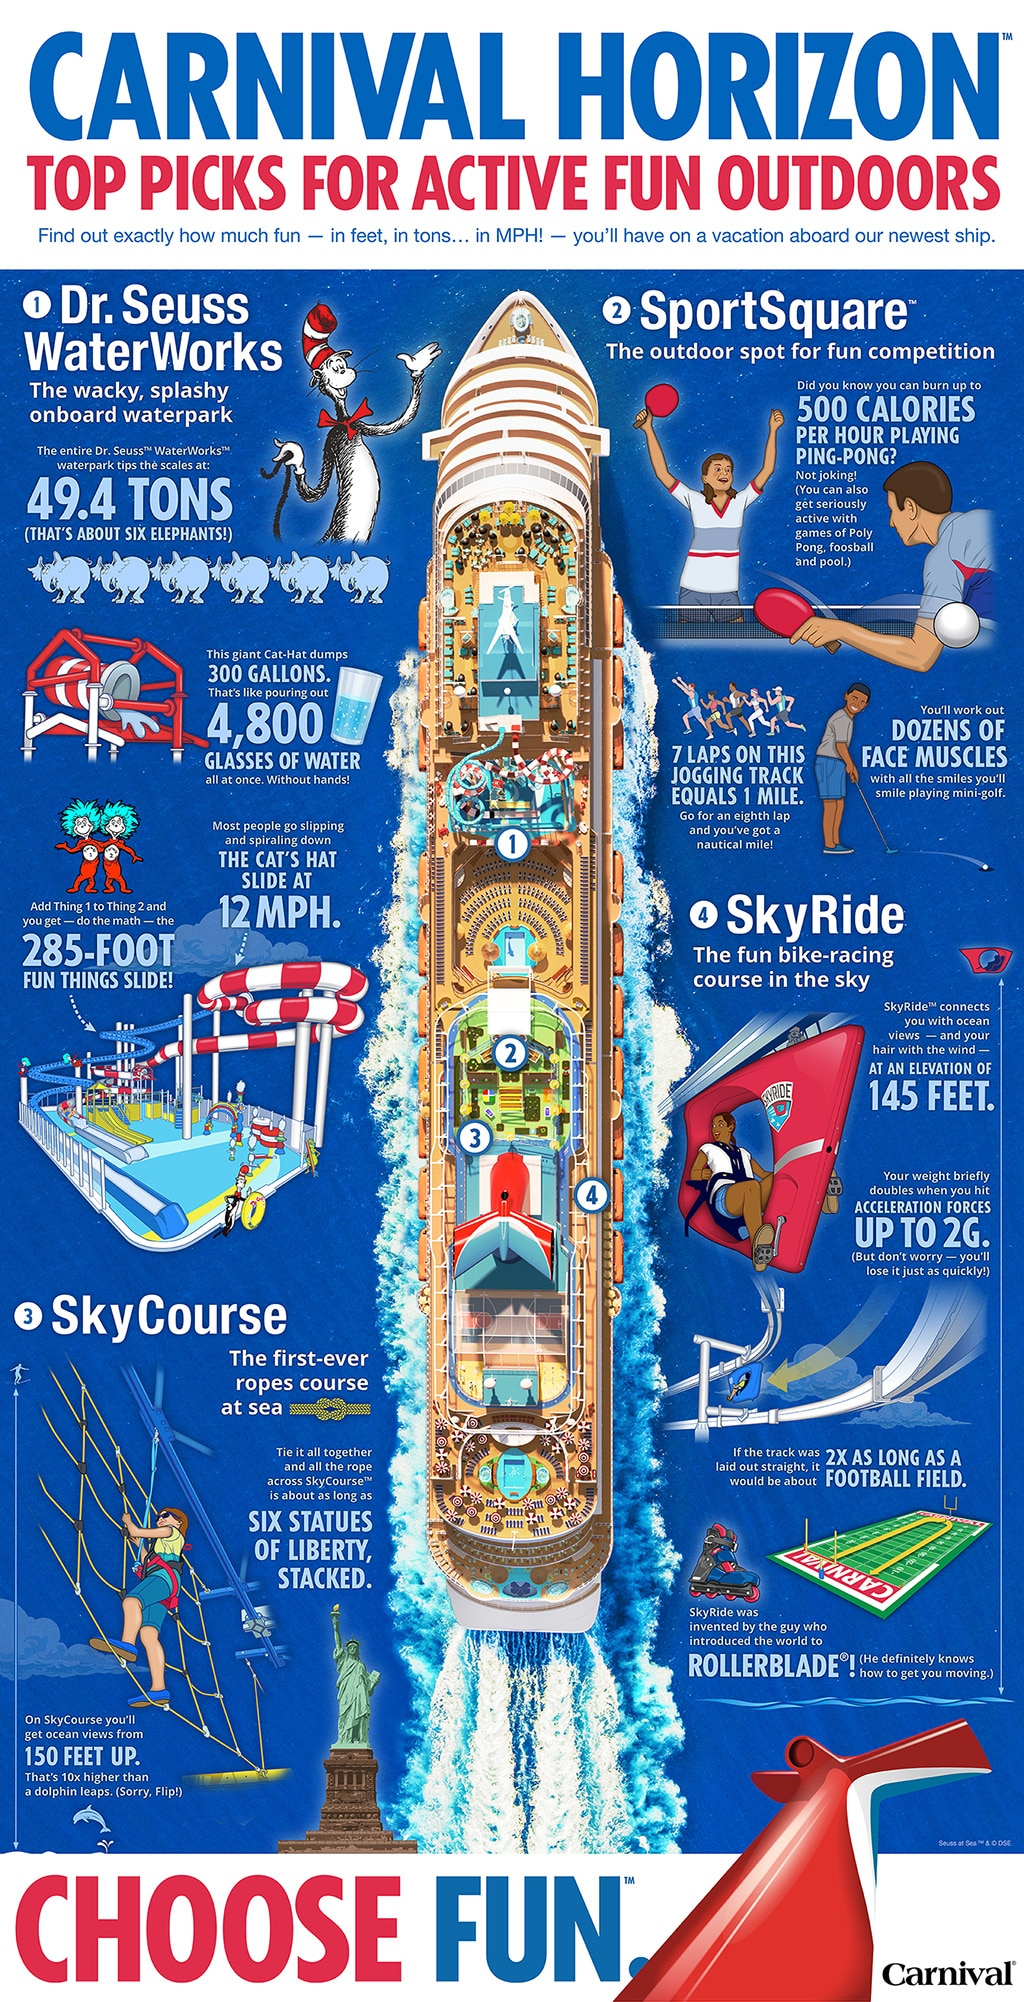 carnival horizon top picks for active fun outdoors infographic